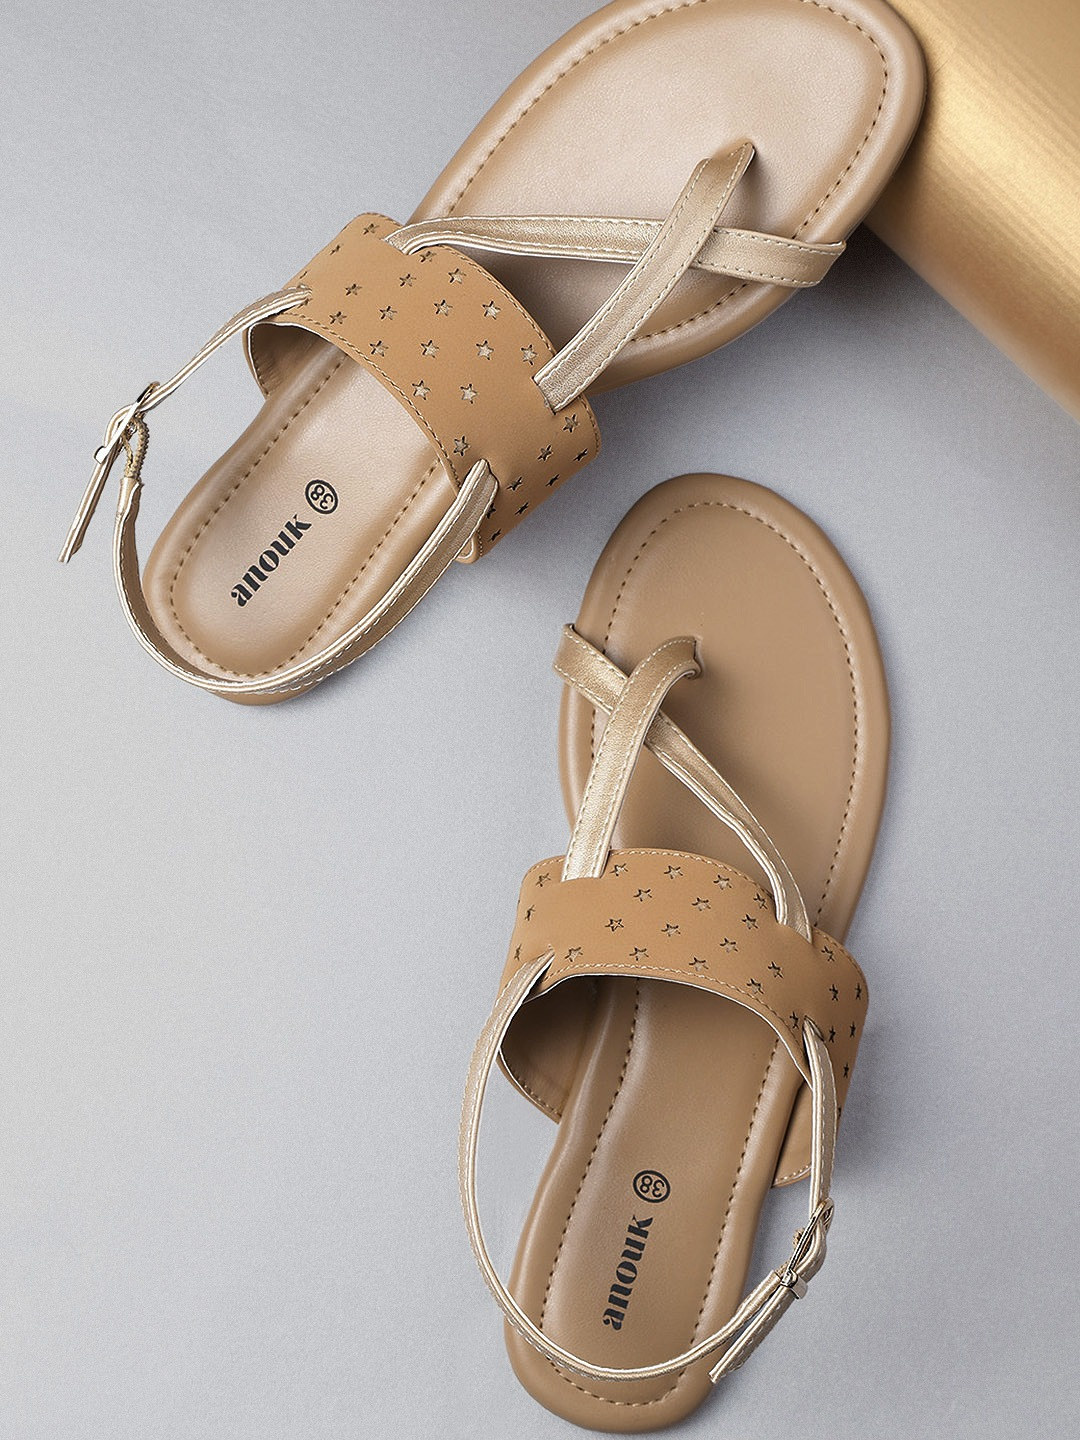 Brown & Gold-Toned Colourblocked One Toe Flats